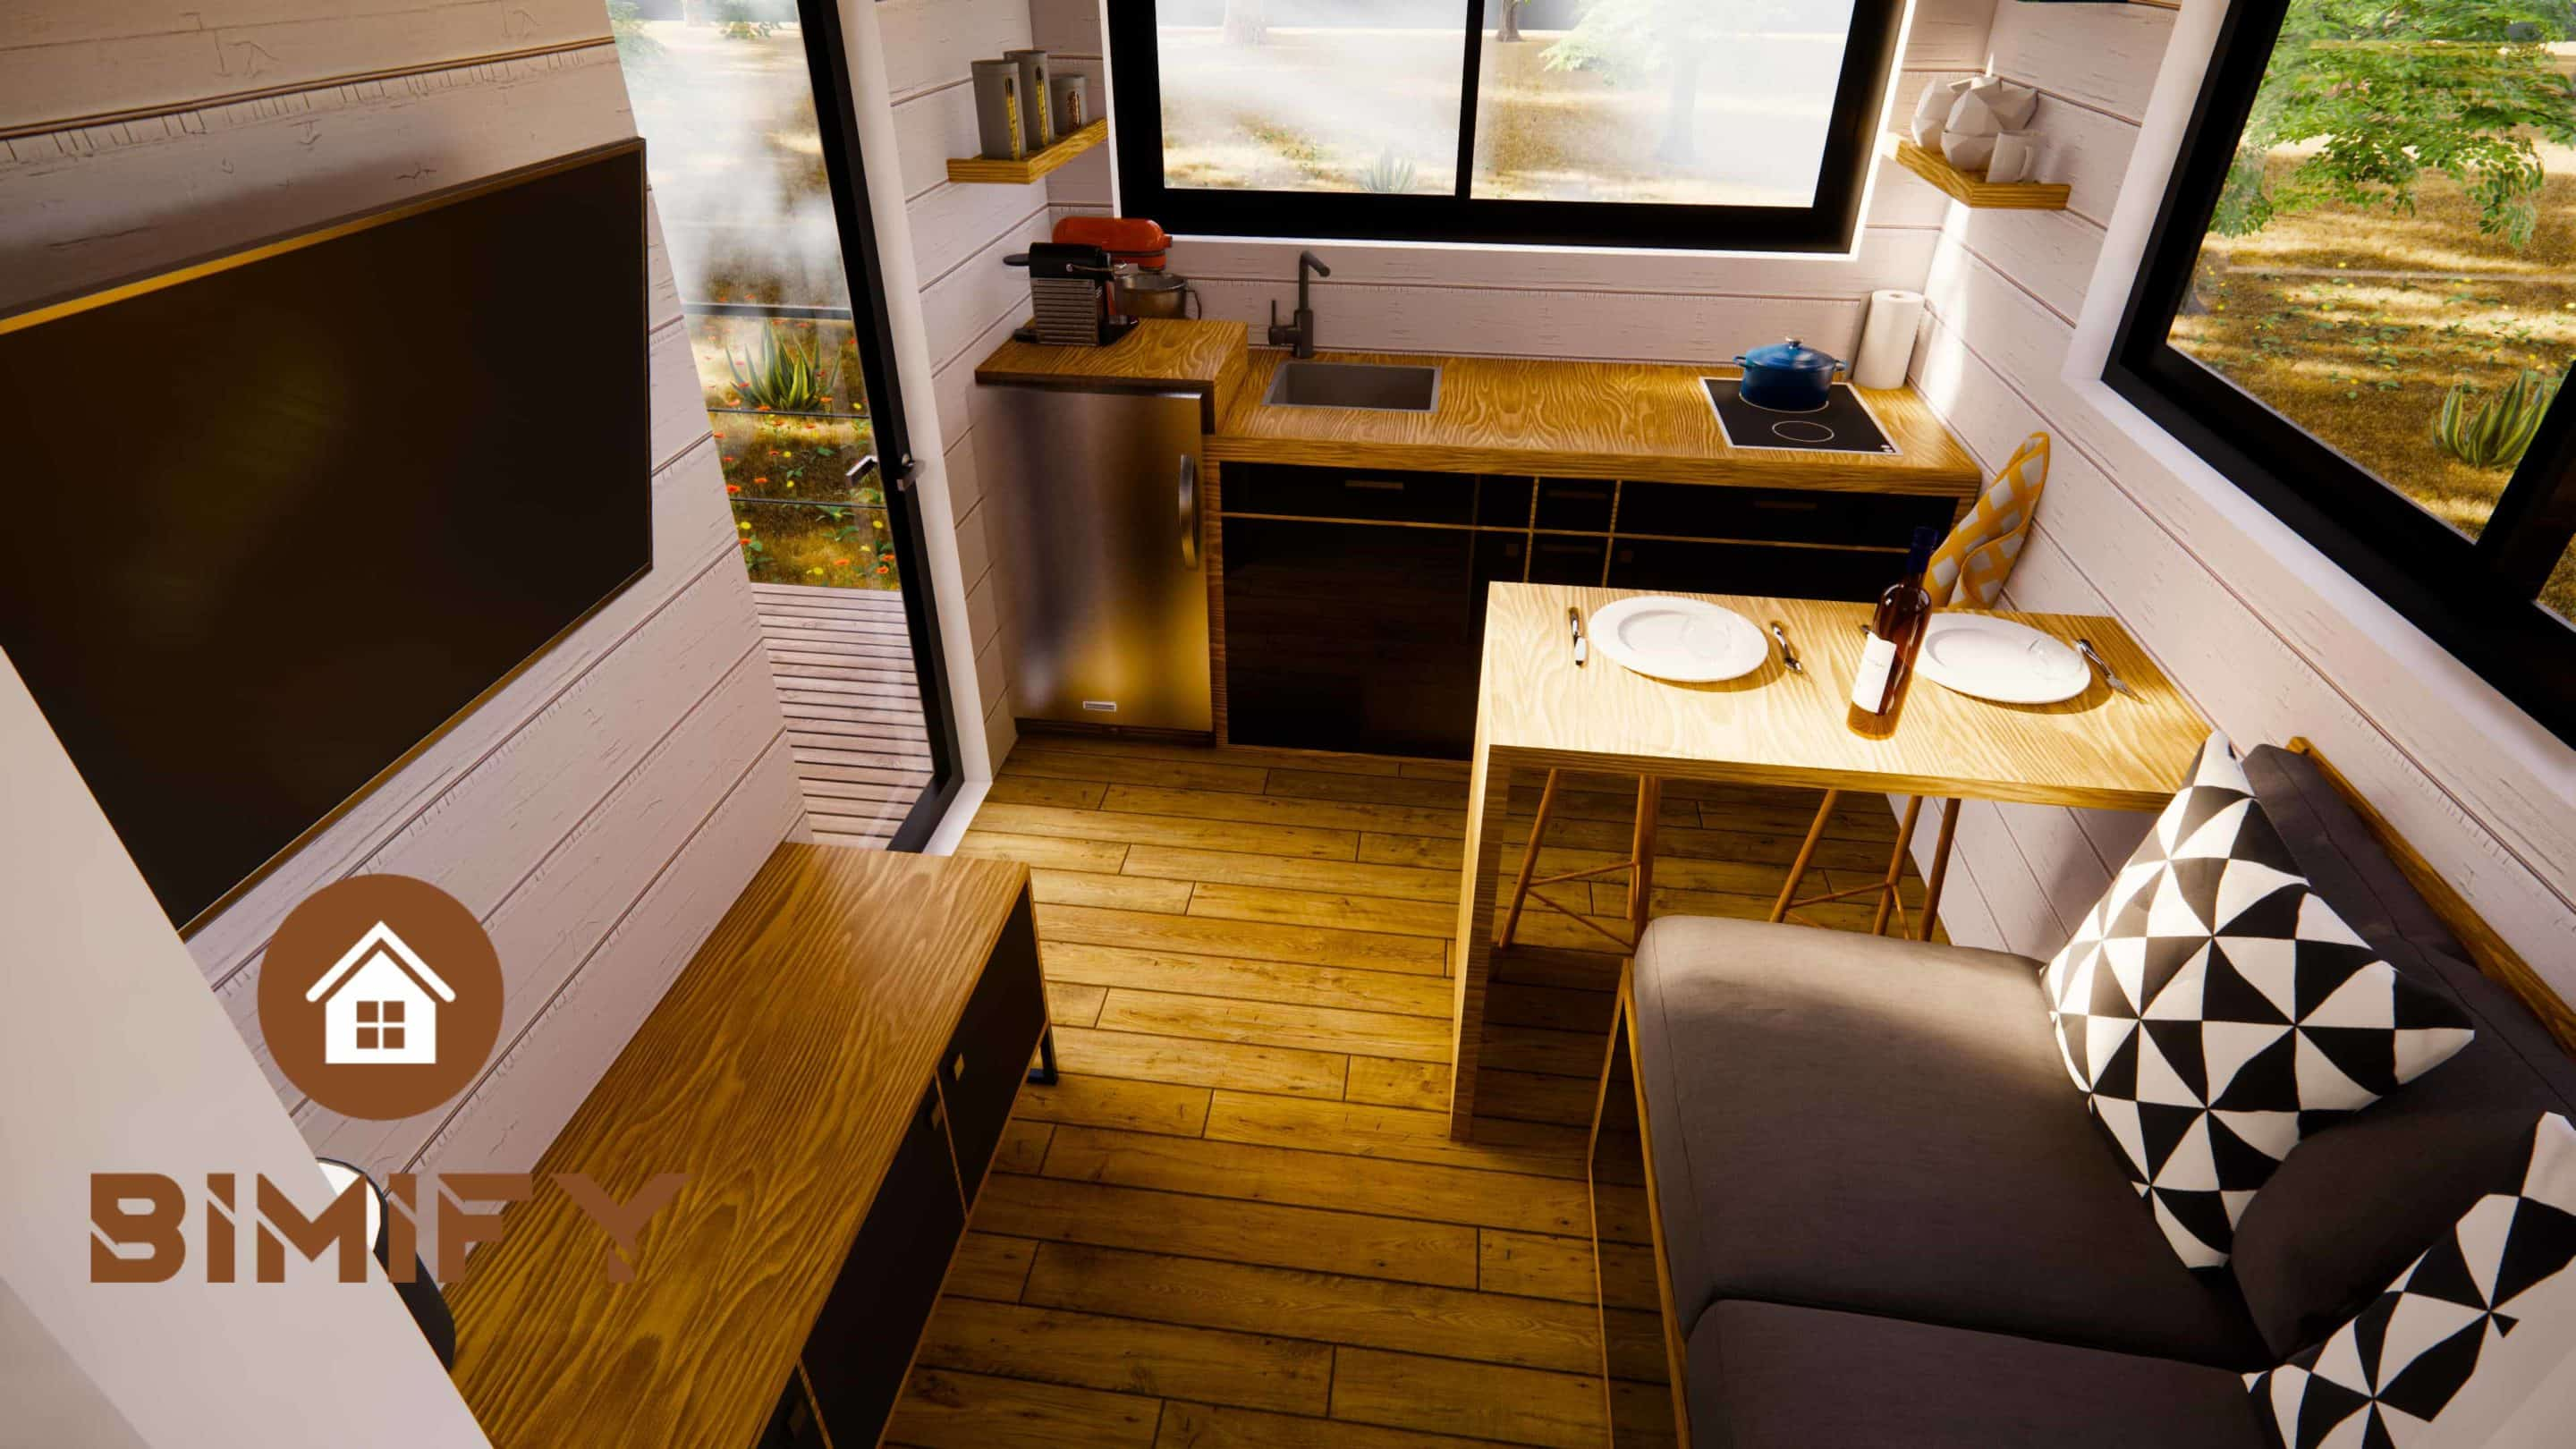 Disposición de la cocina del Tiny Duo 540 - tiny house